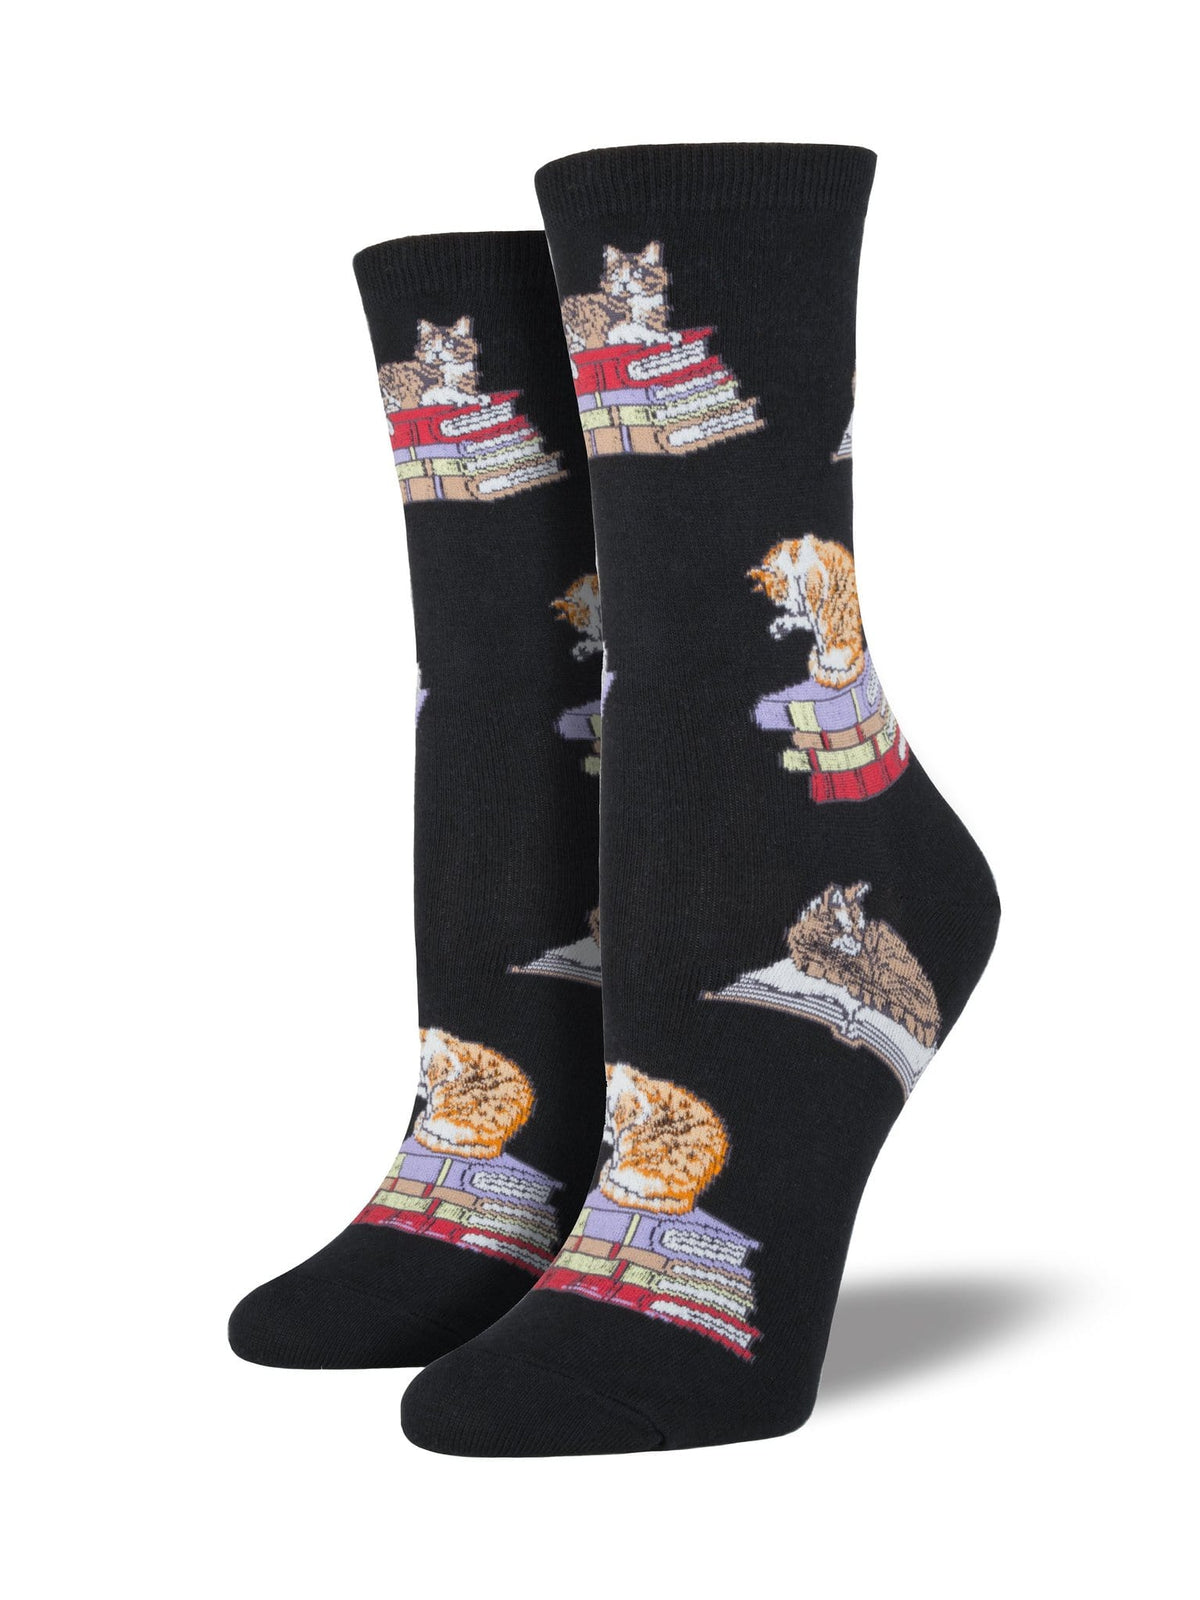 Cats on Books Ladies Socks - Black Socksmith Clothing